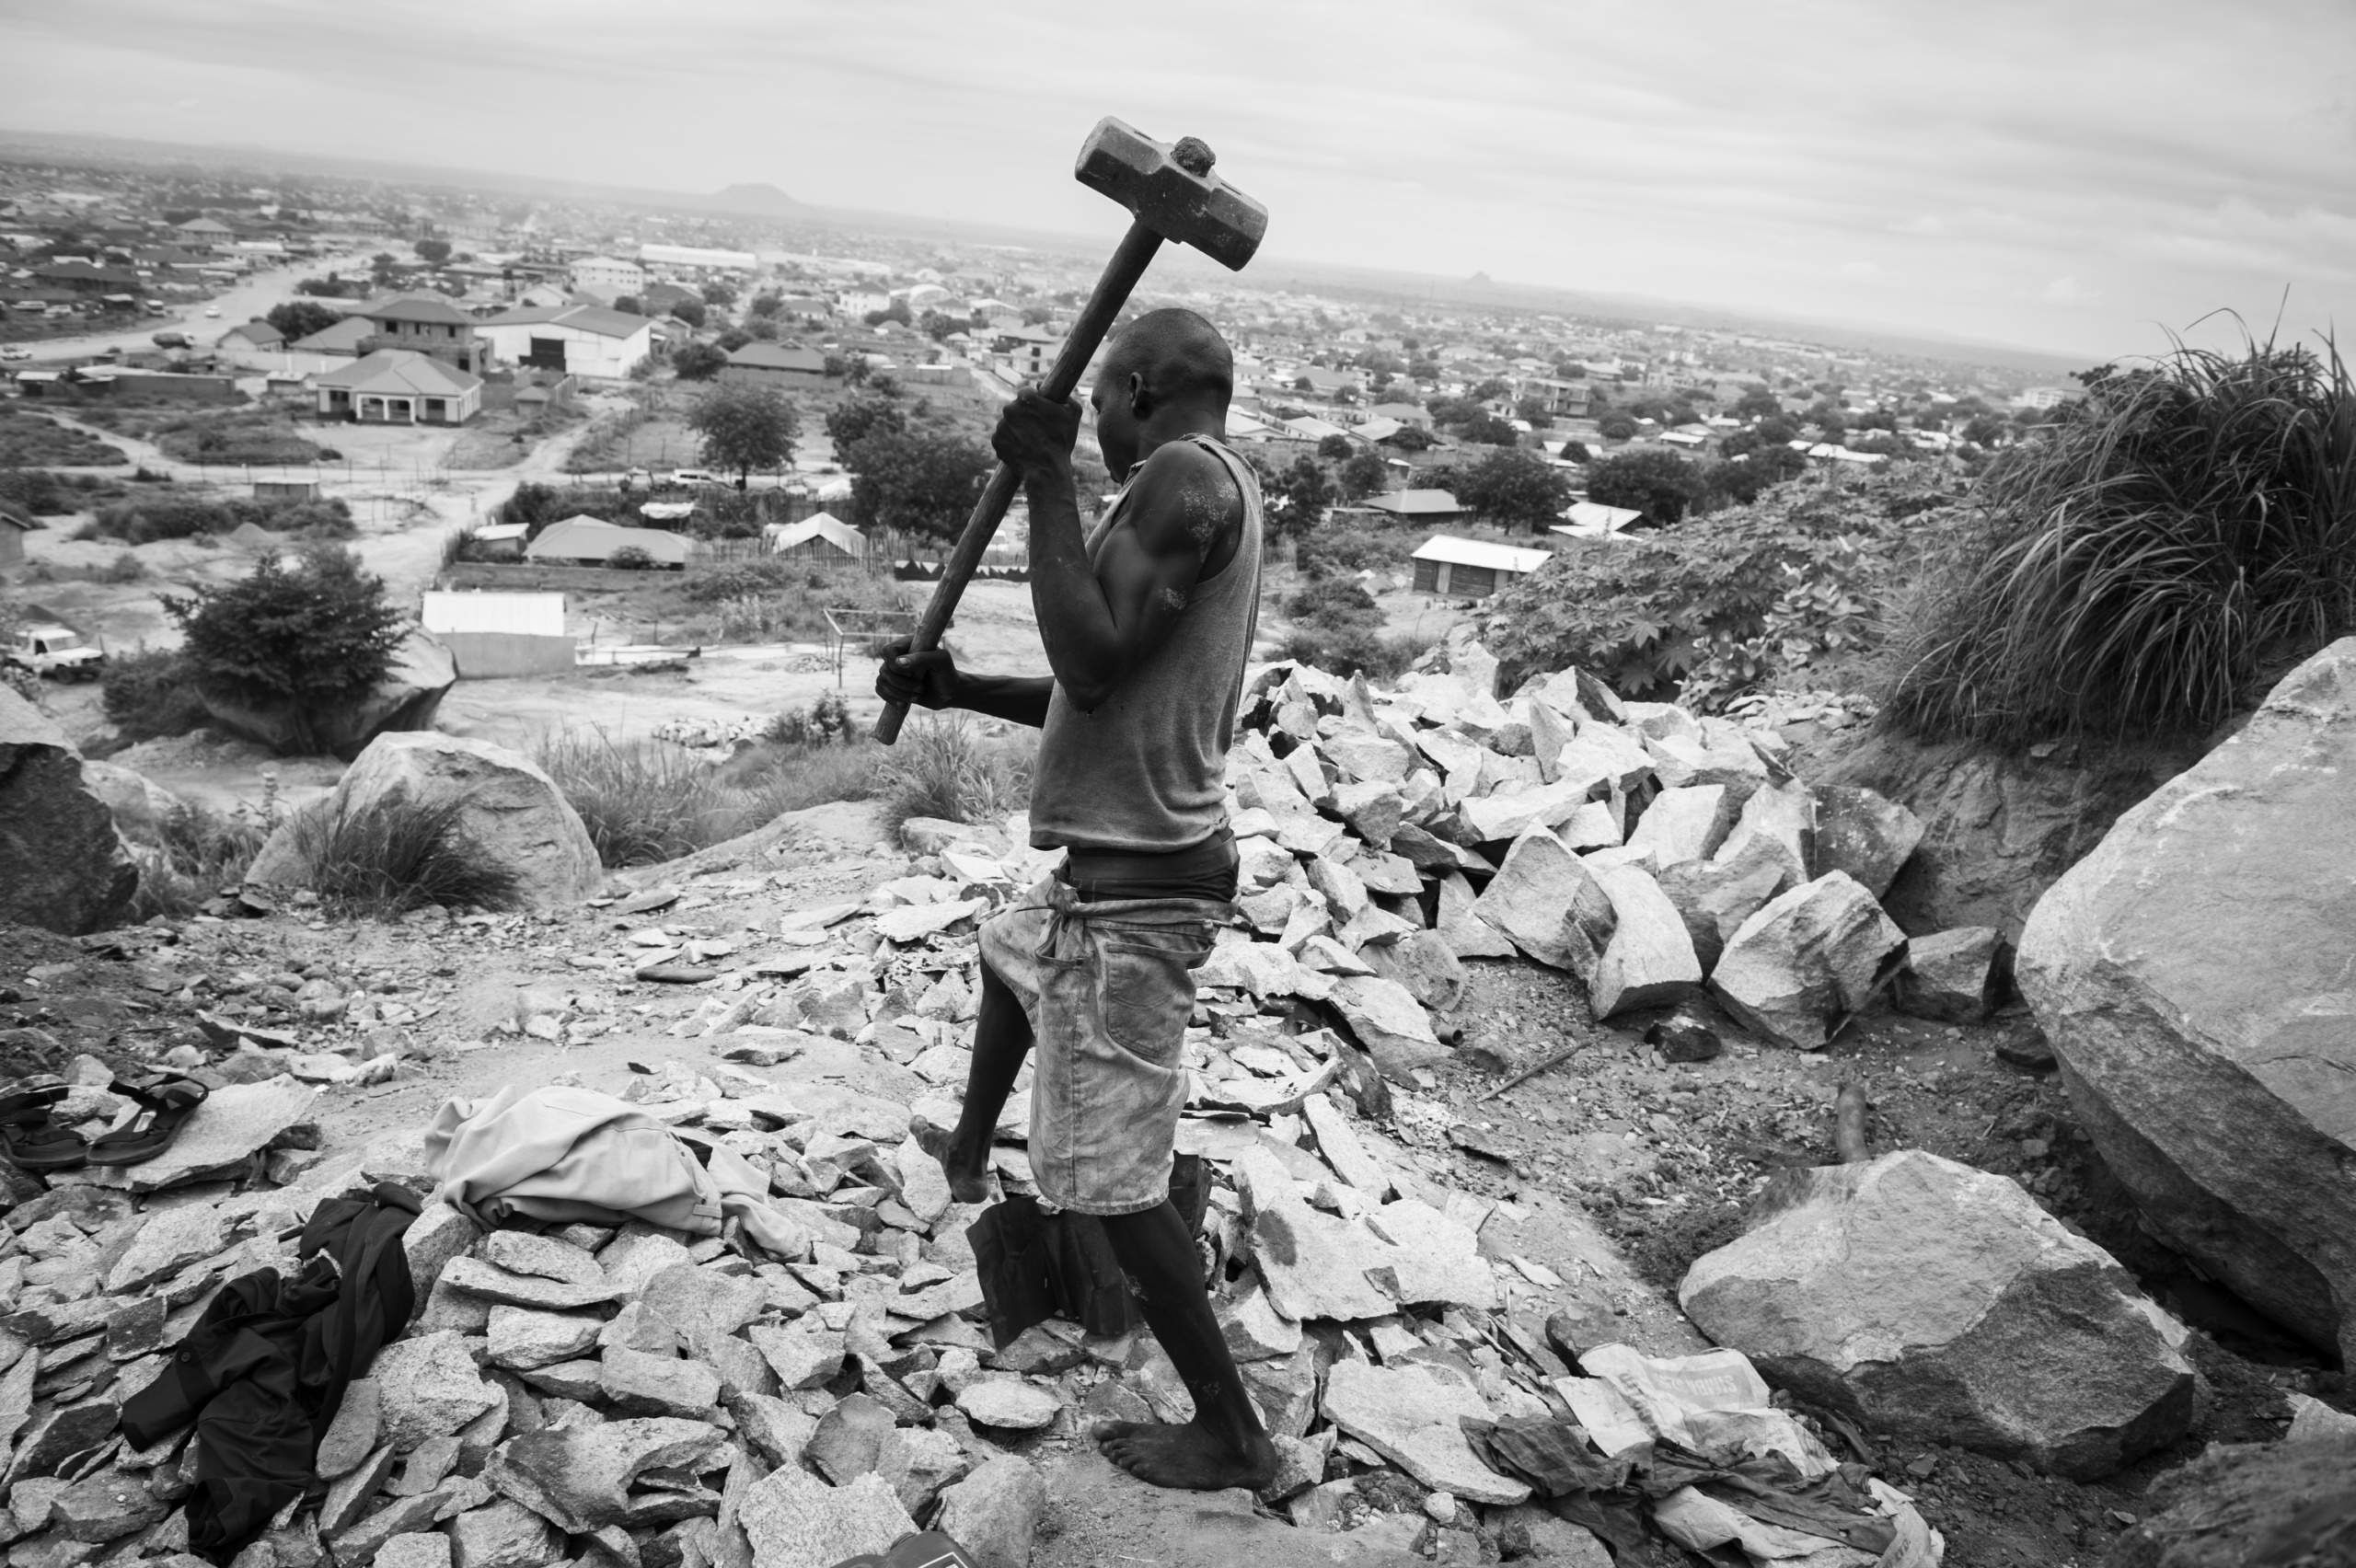 — SOUTH SUDAN Juba, South Sudan. A man working in a stone quarry at Juba. On 9th of July 2011 a new country will be born in Africa. The Republic of South Sudan will be the 54th African state and the 193rd nation in the world. But South Sudan is a very poor country, despite its large oil reserves, which account for 98 percent of its income. South Sudan's society is deeply divided along tribal lines. The main clan is the Dinka, a pastoral semi-nomadic population. Violence is endemic to the region, often as a consequences of cattle ownership issues. But violence is also very much fed by the uncountable number of weapons circulating in the country, the heavy legacy of a 30 year long civil war against North Sudan.